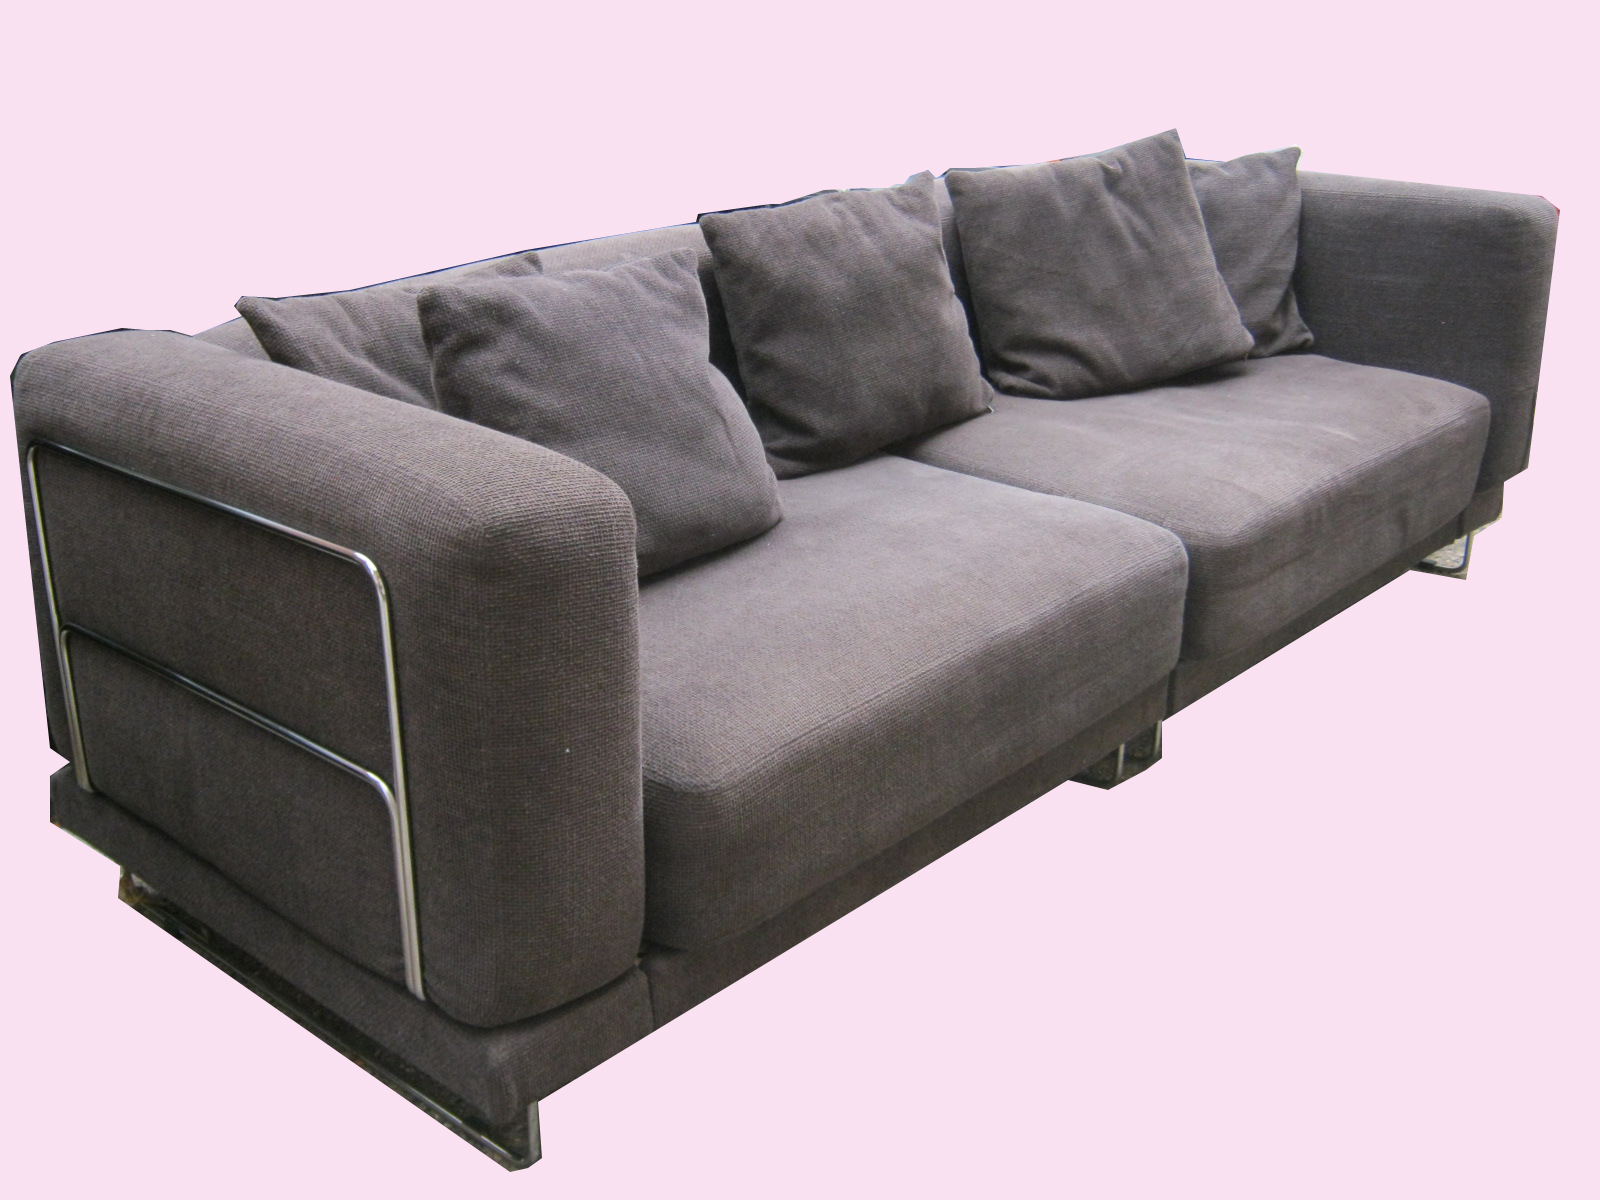 ikea tylosand sofa 50 auf tyl sand sofas bei ikea thesofa. Black Bedroom Furniture Sets. Home Design Ideas